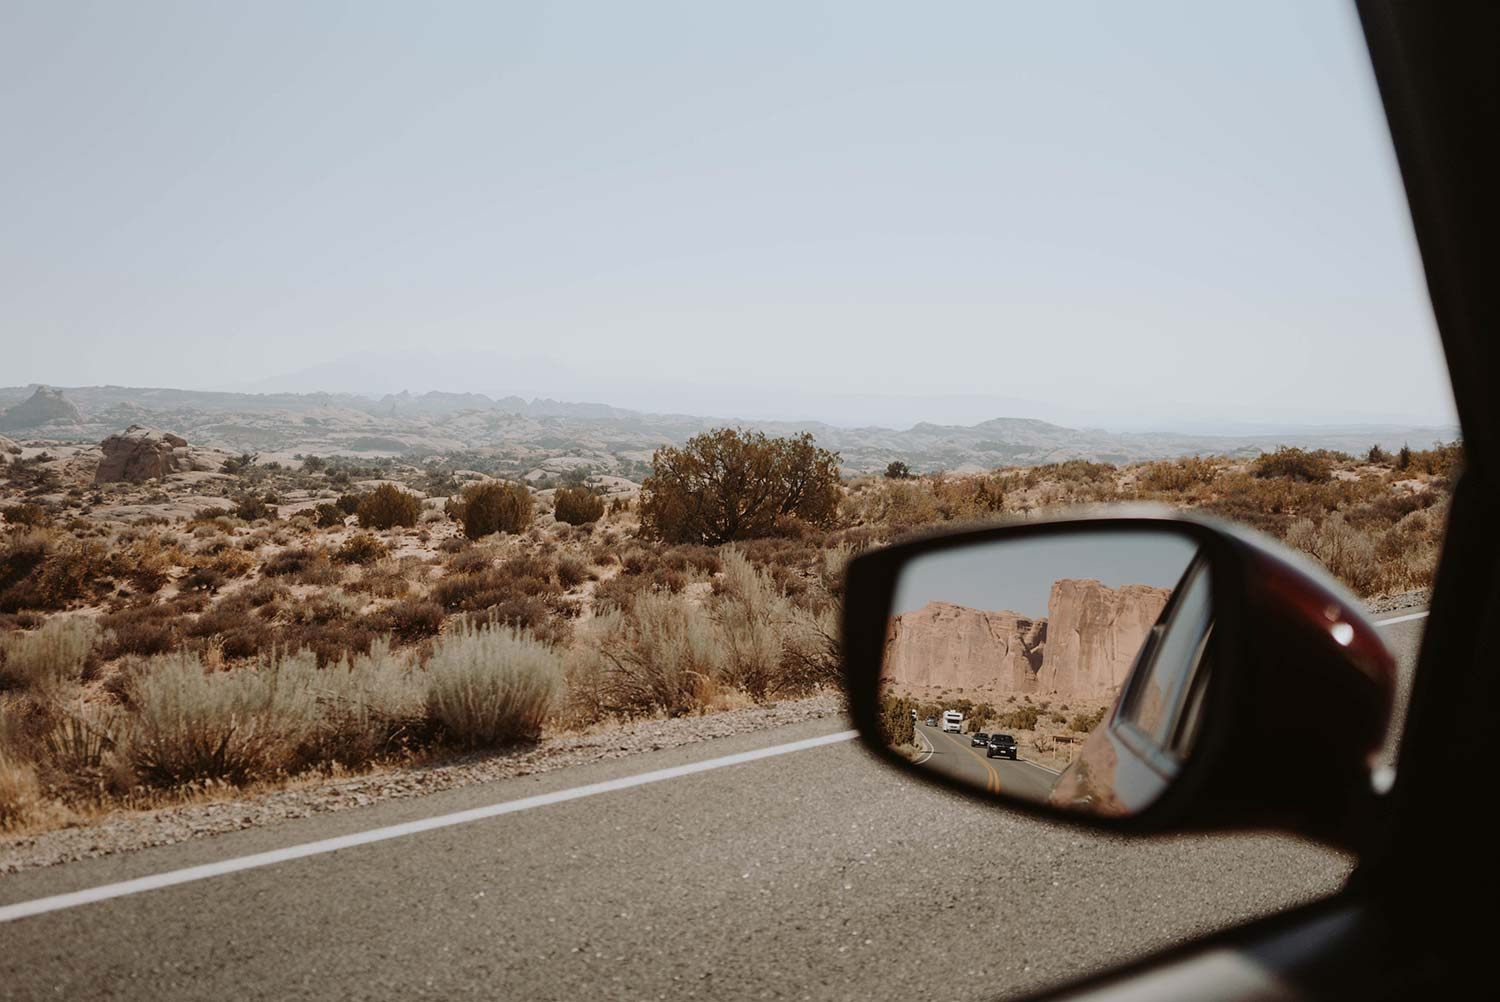 view from window passing cactus valley showing rearview mirror of car